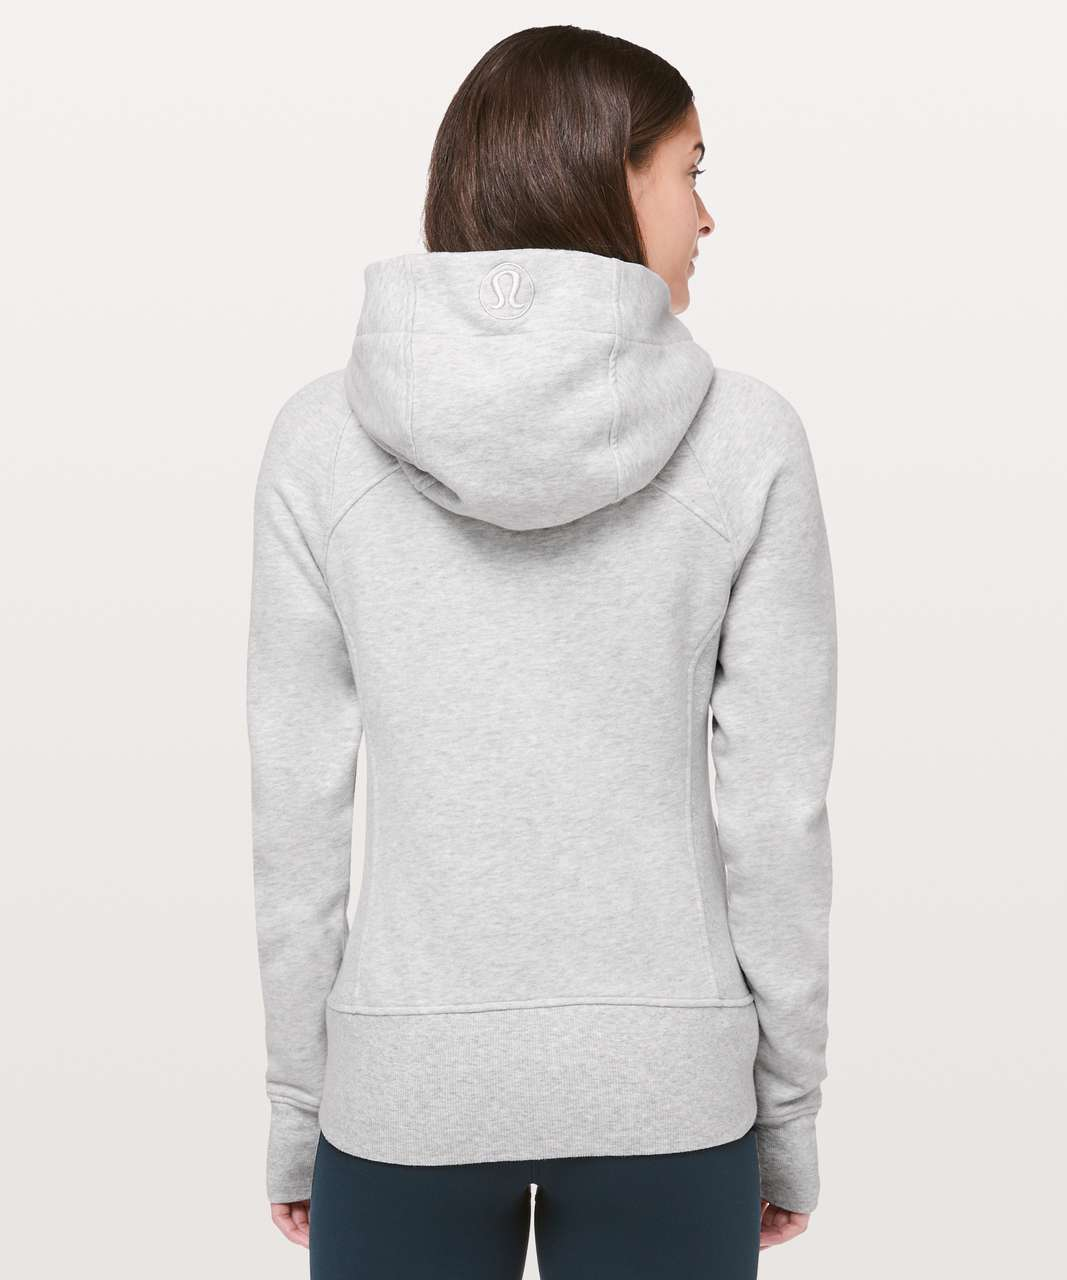 Lululemon Scuba Hoodie *Light Cotton Fleece - Heathered Core Ultra Light Grey